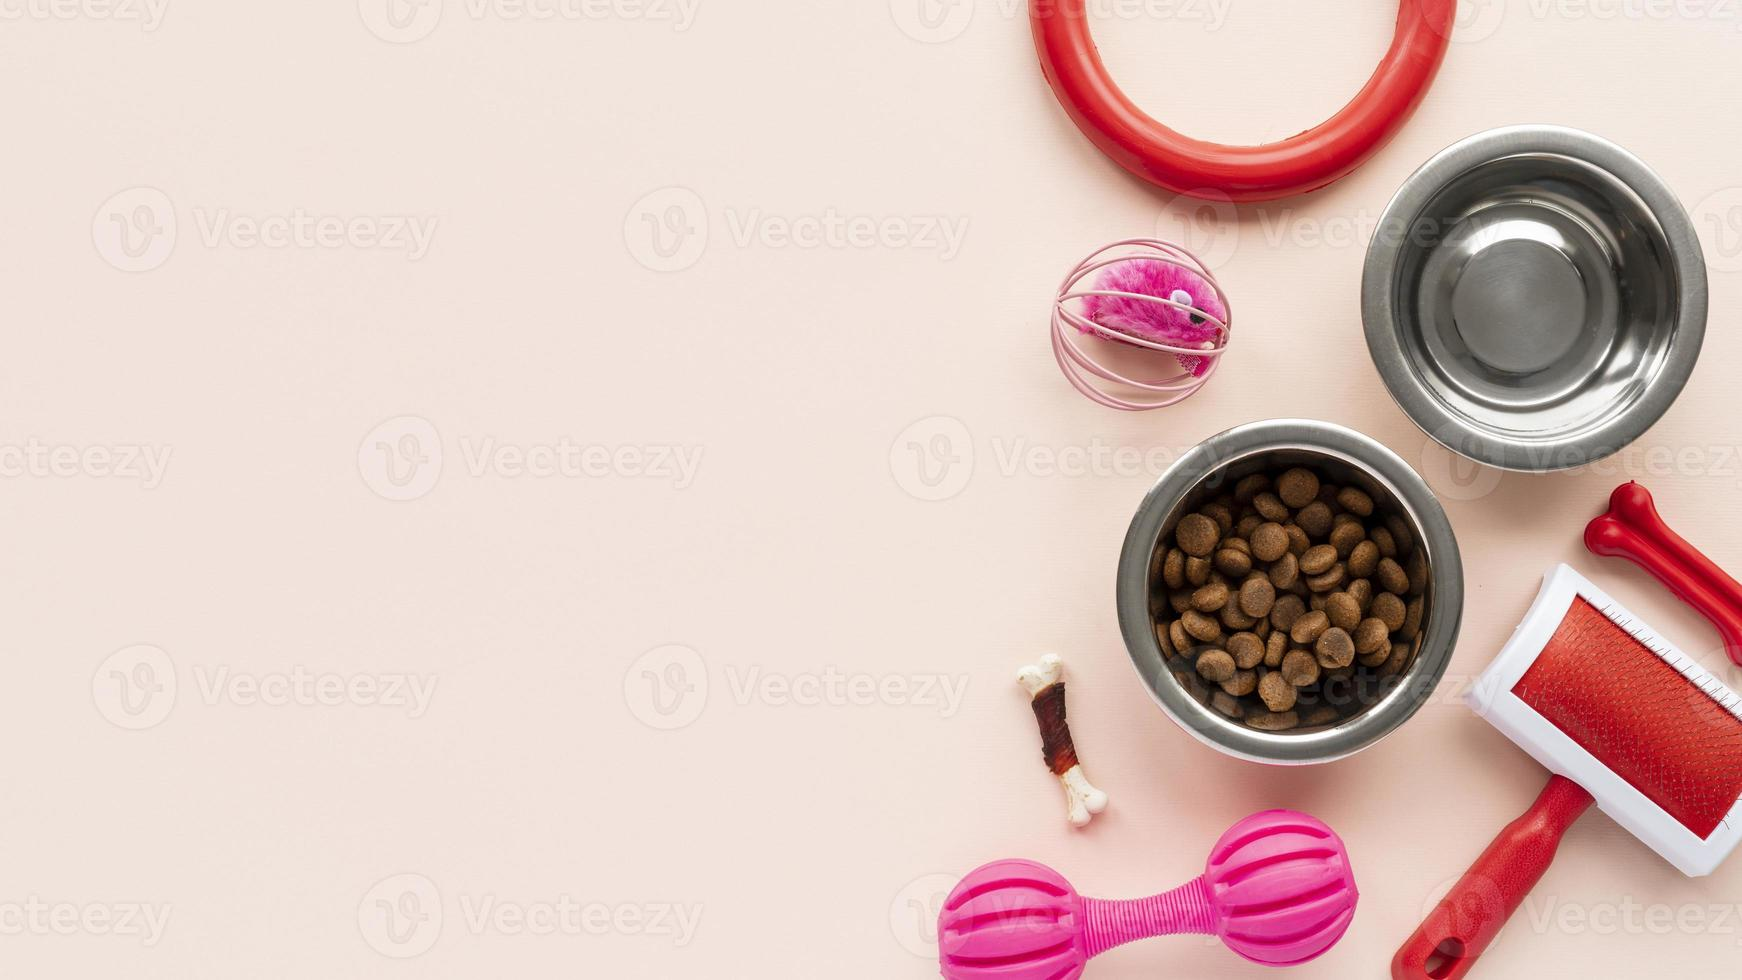 Top view on bowls set with pet accessories still life concept photo